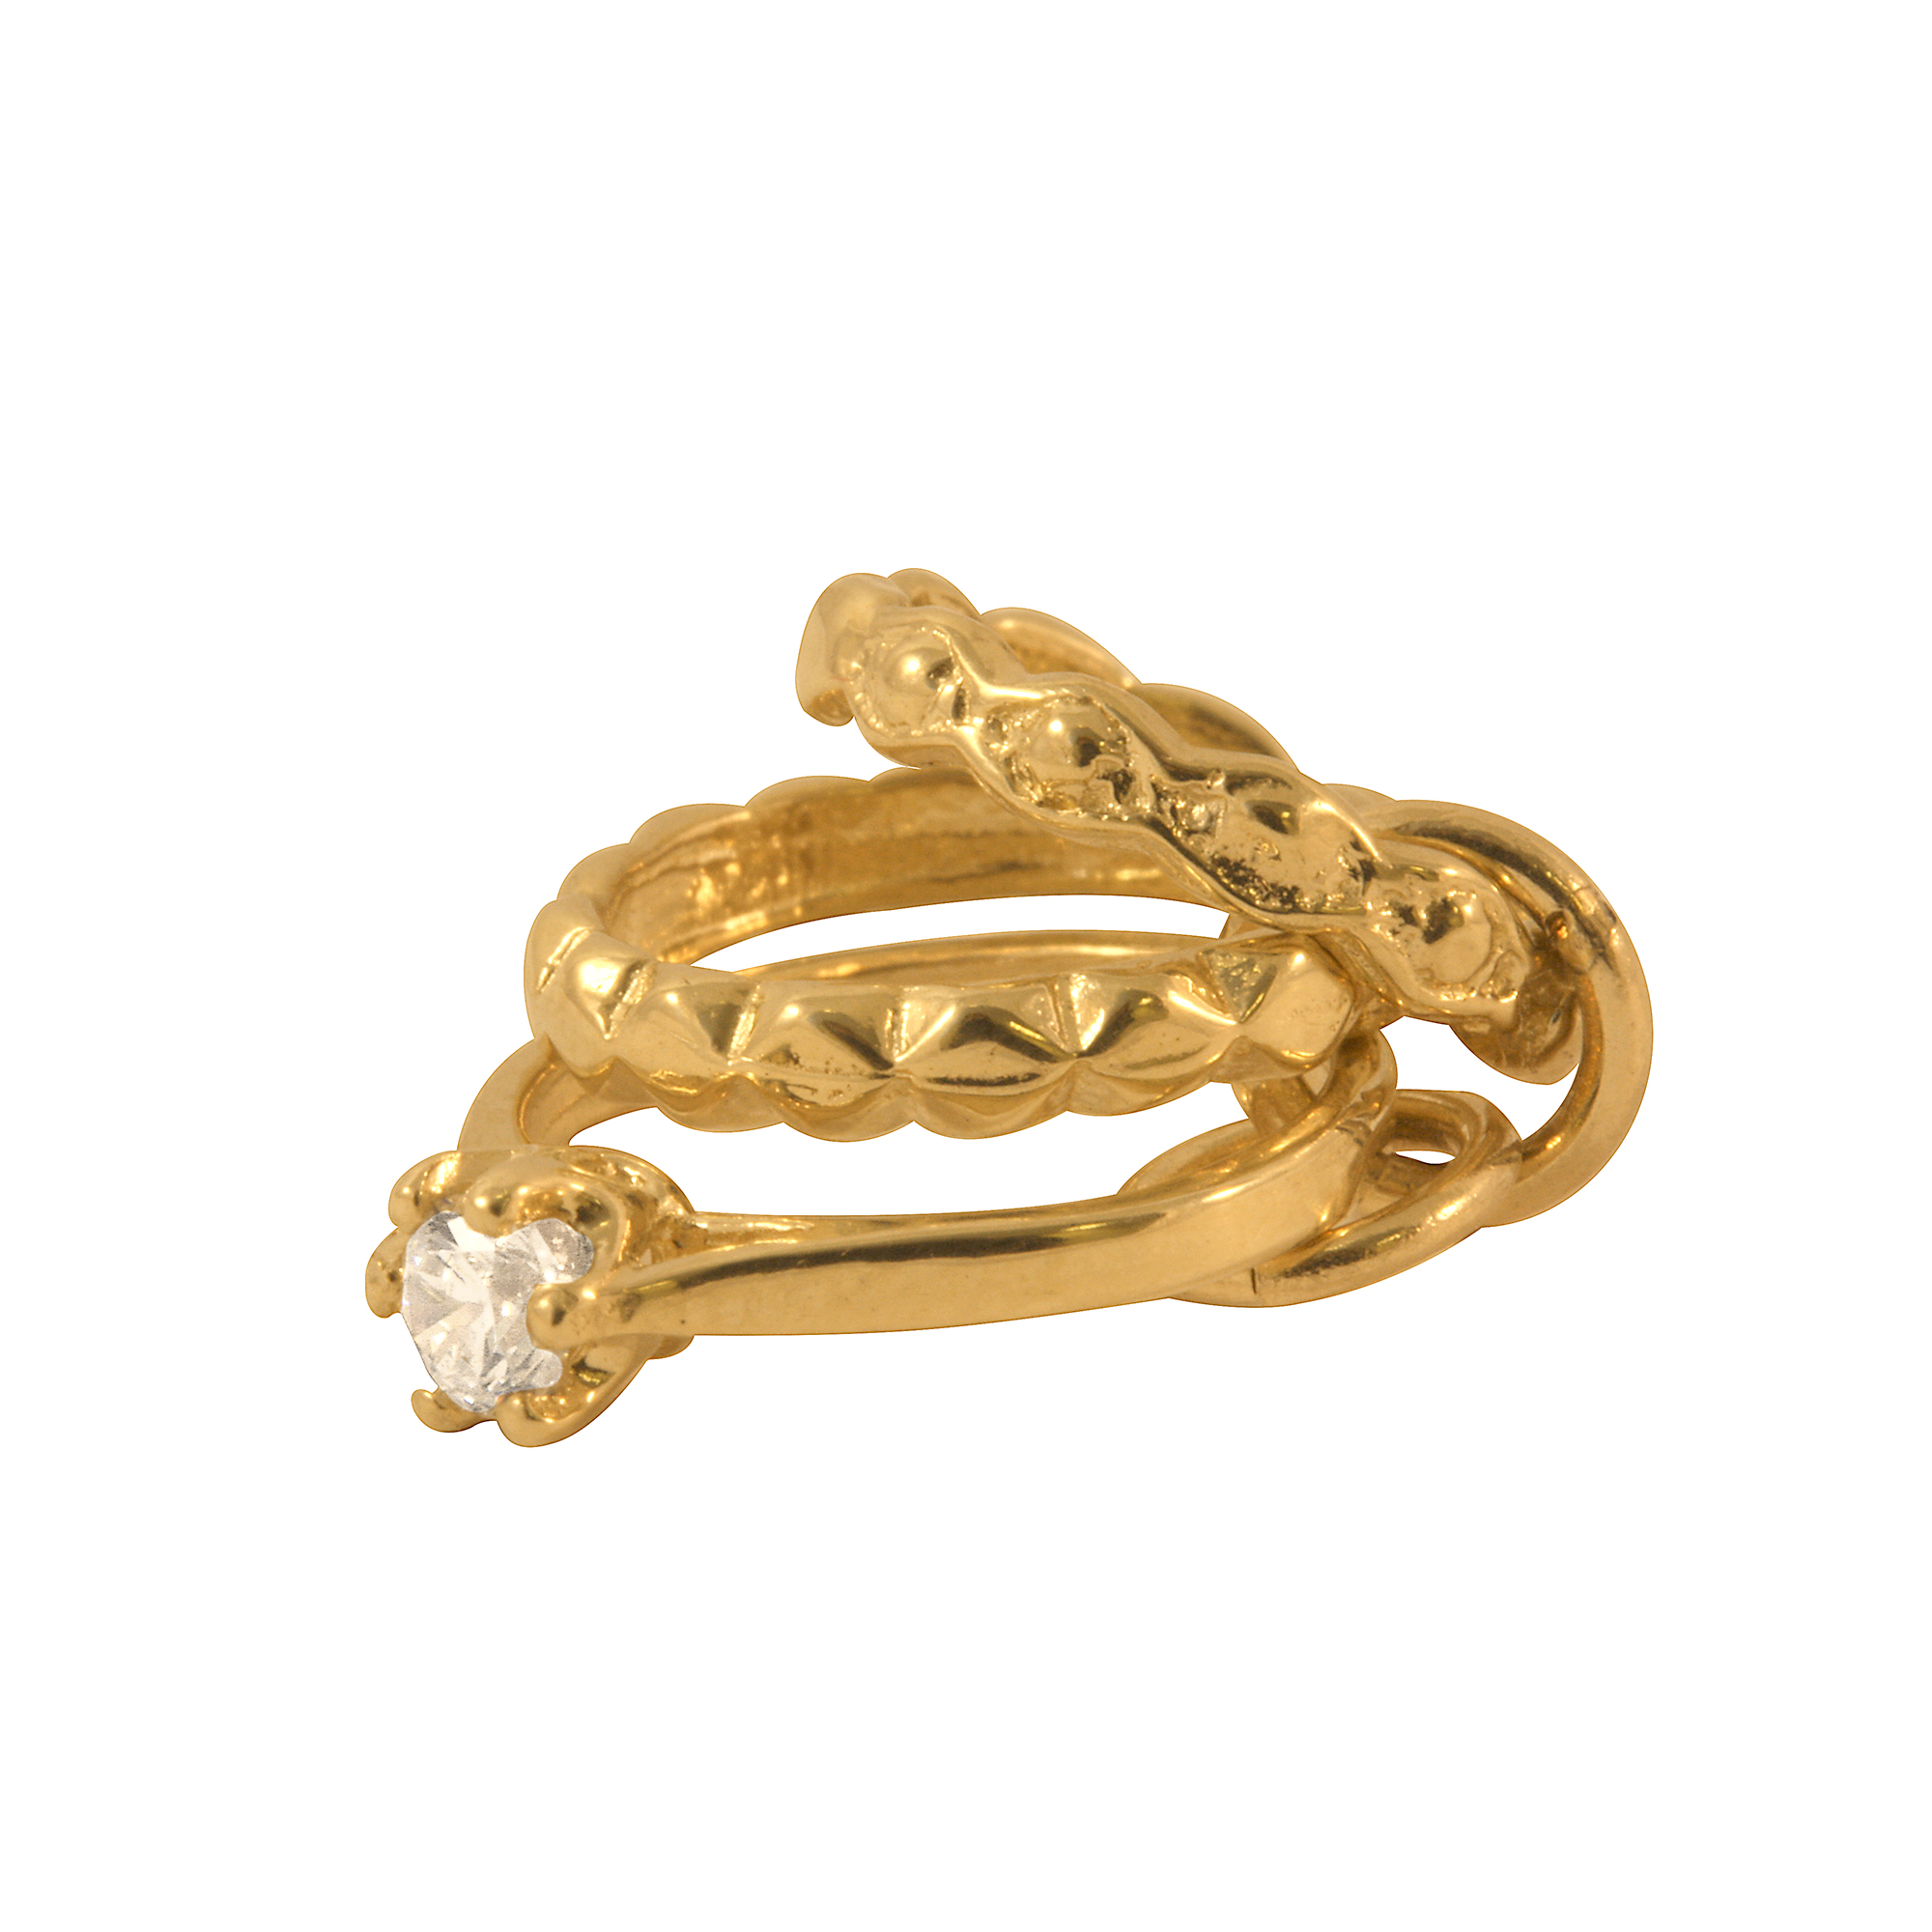 An image of 9ct Gold 3 Rings Crystal Charm